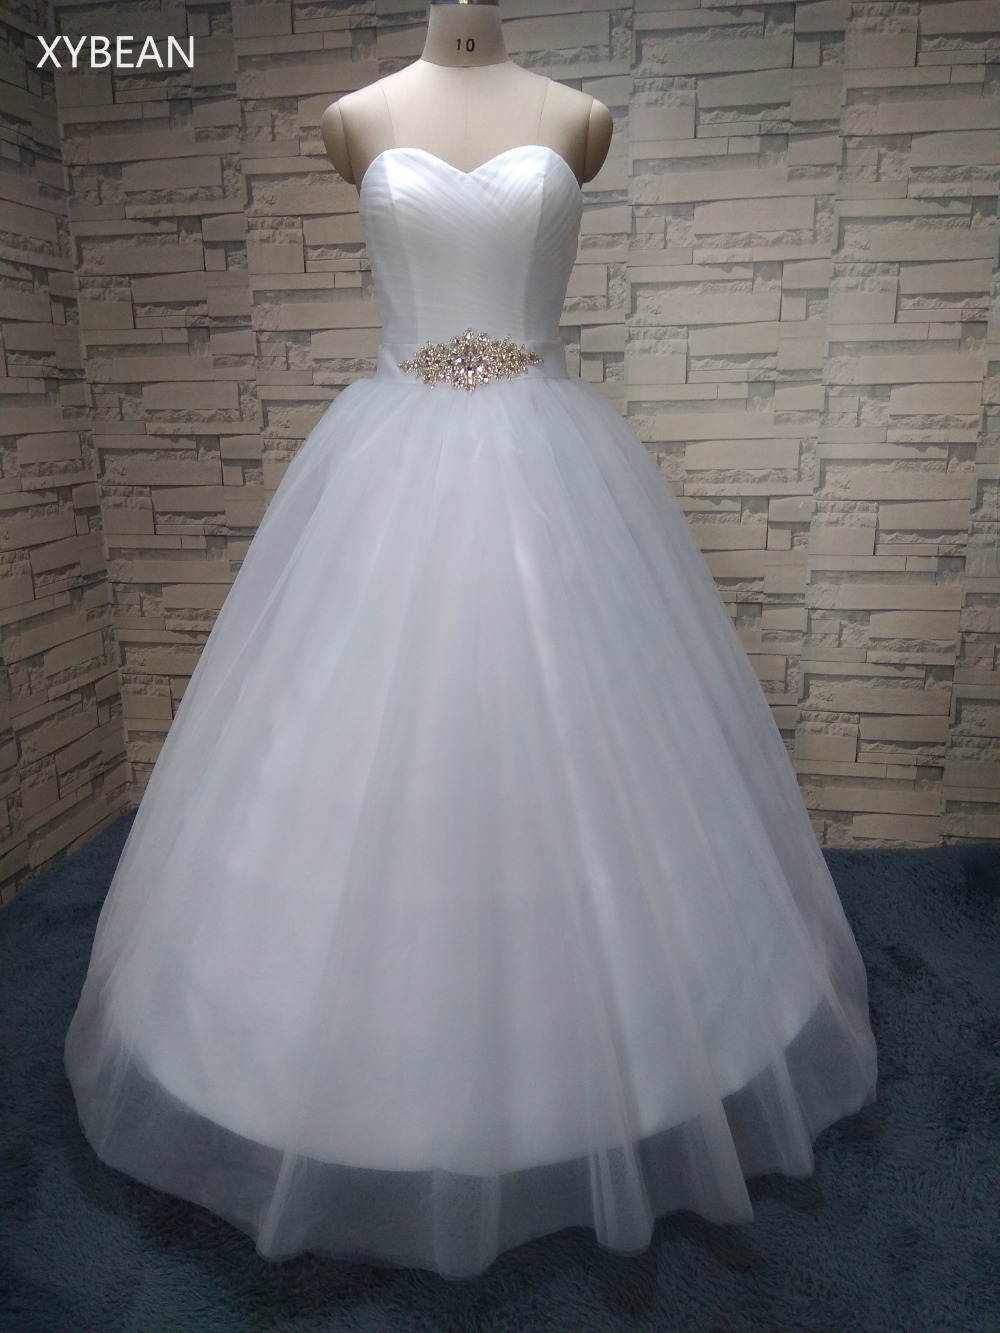 Free Shipping 2016 New Arrival Bridal  White/Ivory Wedding Dress bridal Gown Custom Size 4 6 8 10 12 14 16 18